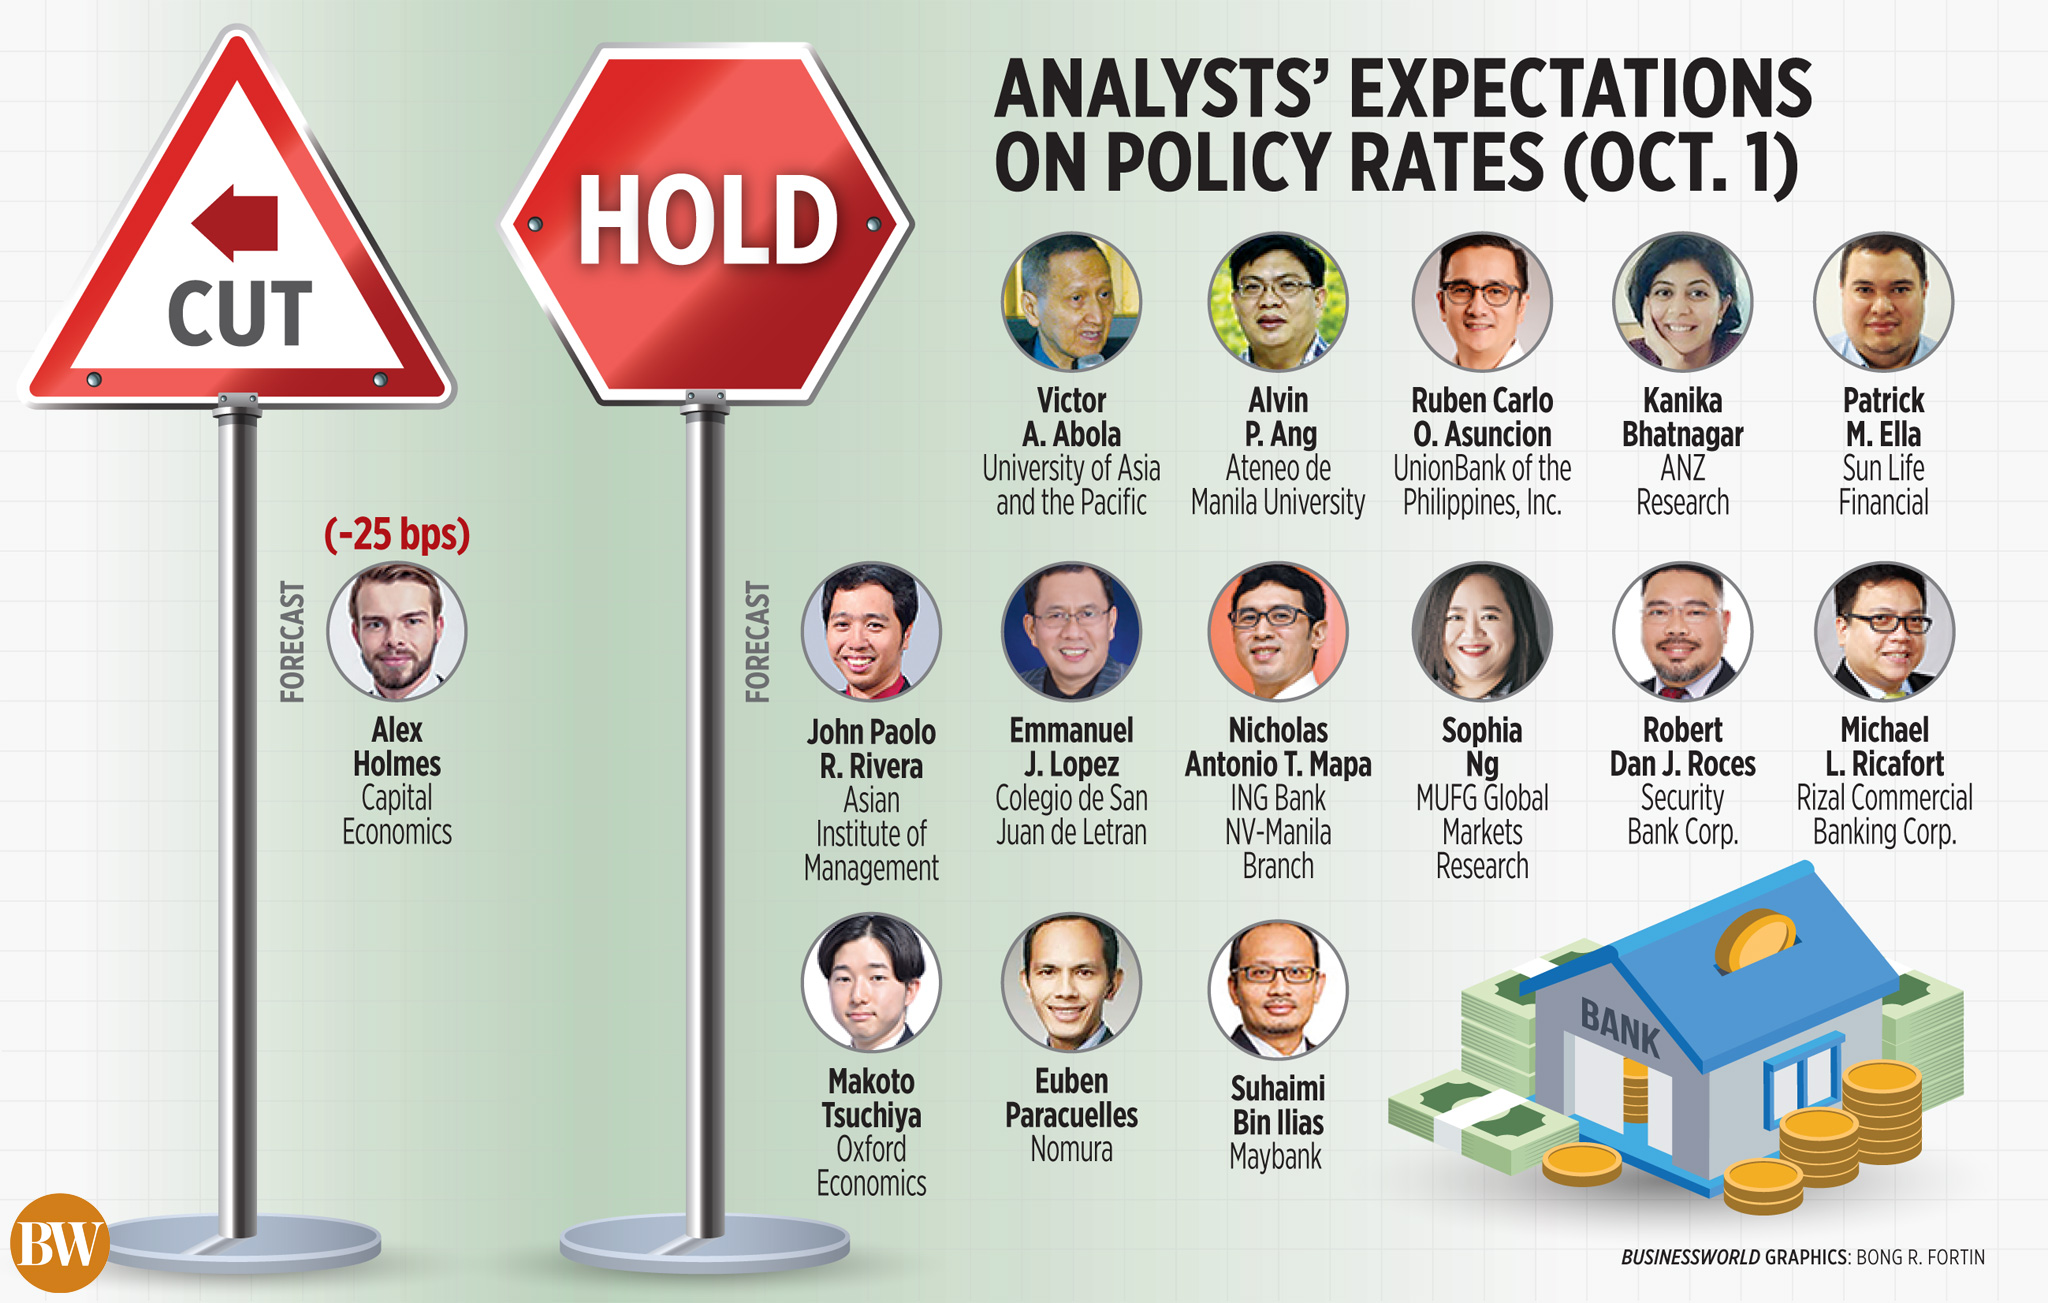 Analysts' expectations on policy rates (Oct. 1)